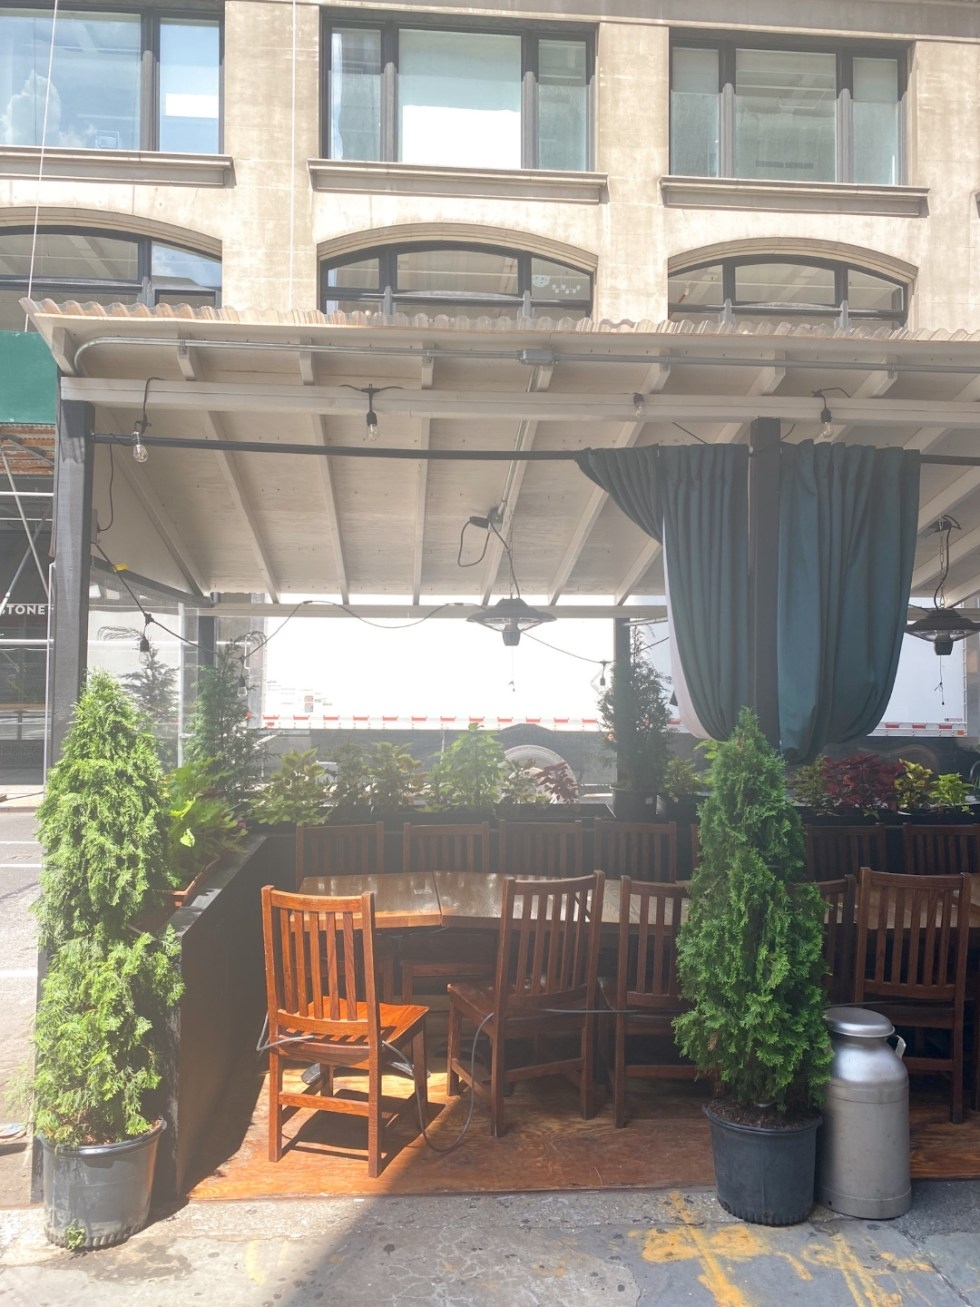 NYC Summer Weekend: Things to Do in NYC in the Summer - I'm Fixin' To - @imfixintoblog   NYC Summer Weekend by popular NC travel blog, I'm Fixin' To: image of a row of tables, wooden chairs, and potted plants.